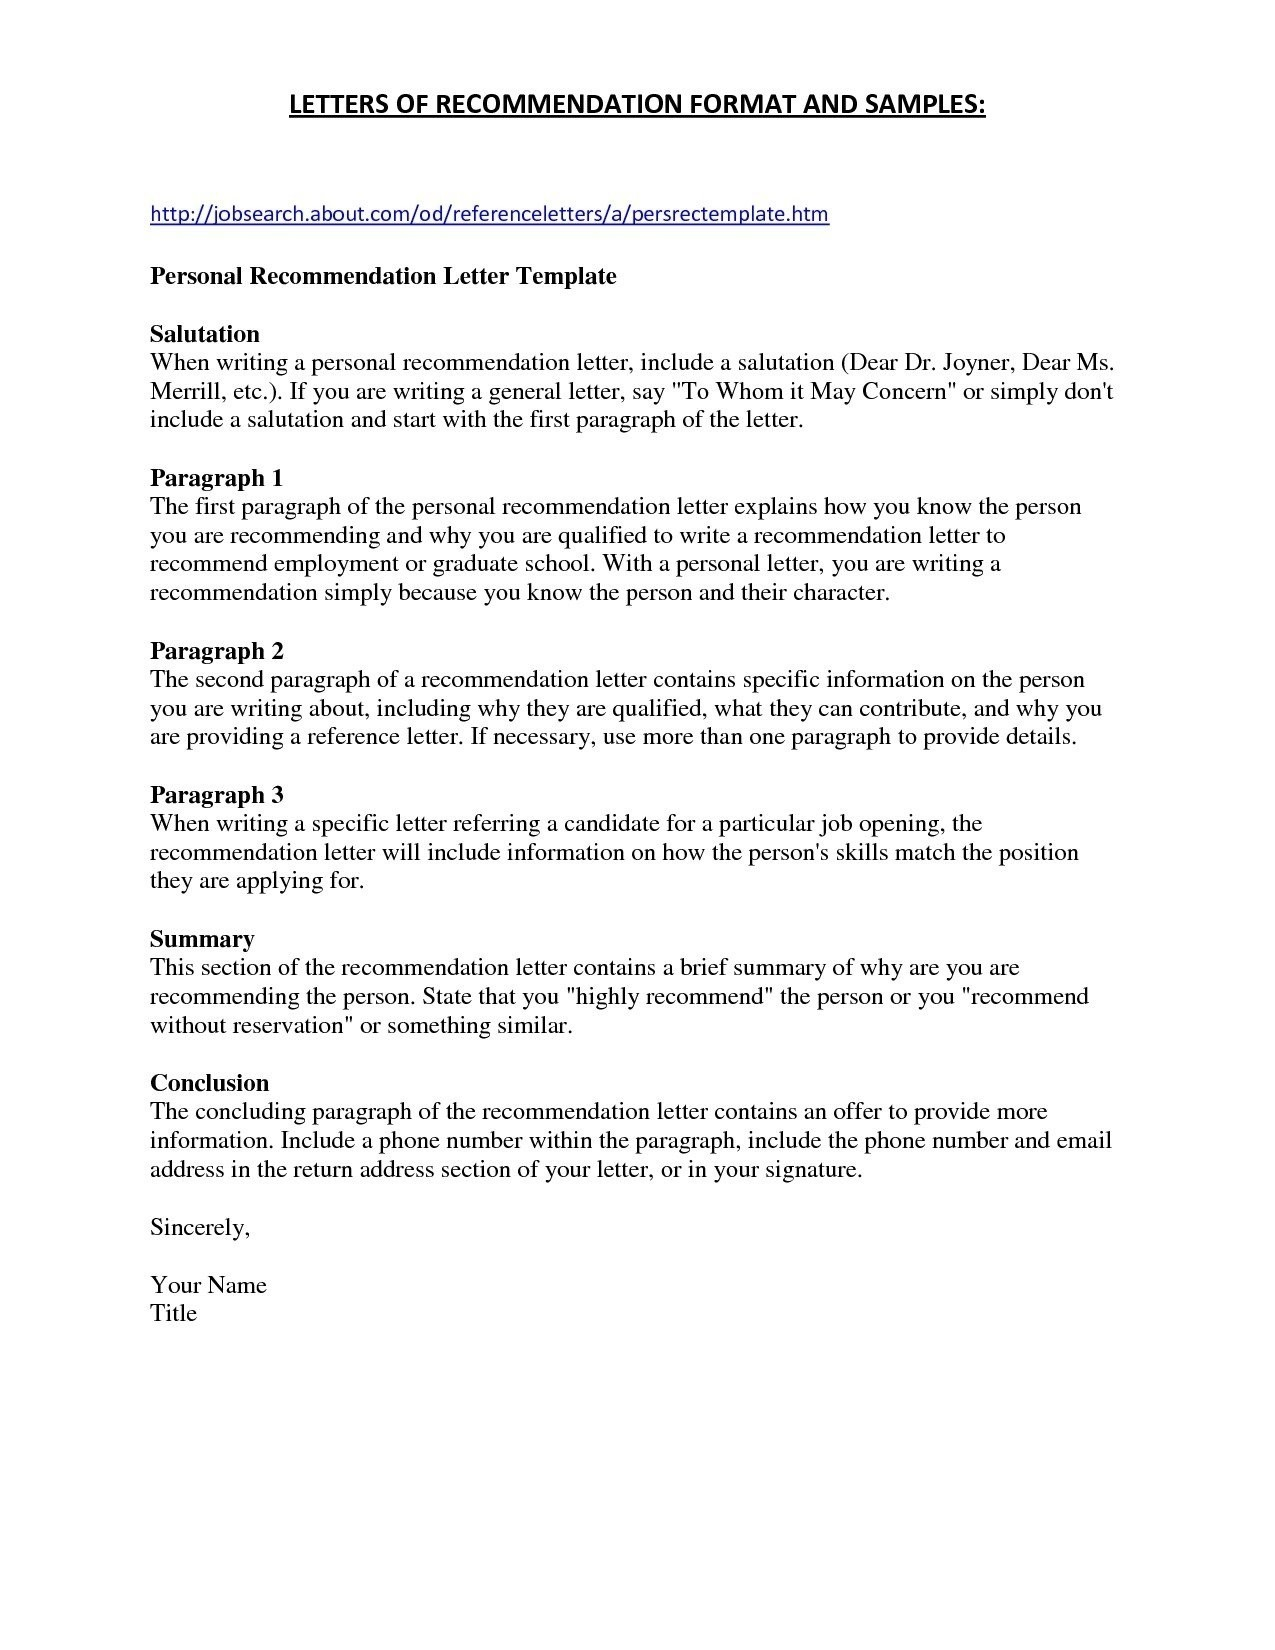 Cover Letter Template Retail Sales assistant - Example Cover Letter for Retail Job New Cover Letter format for